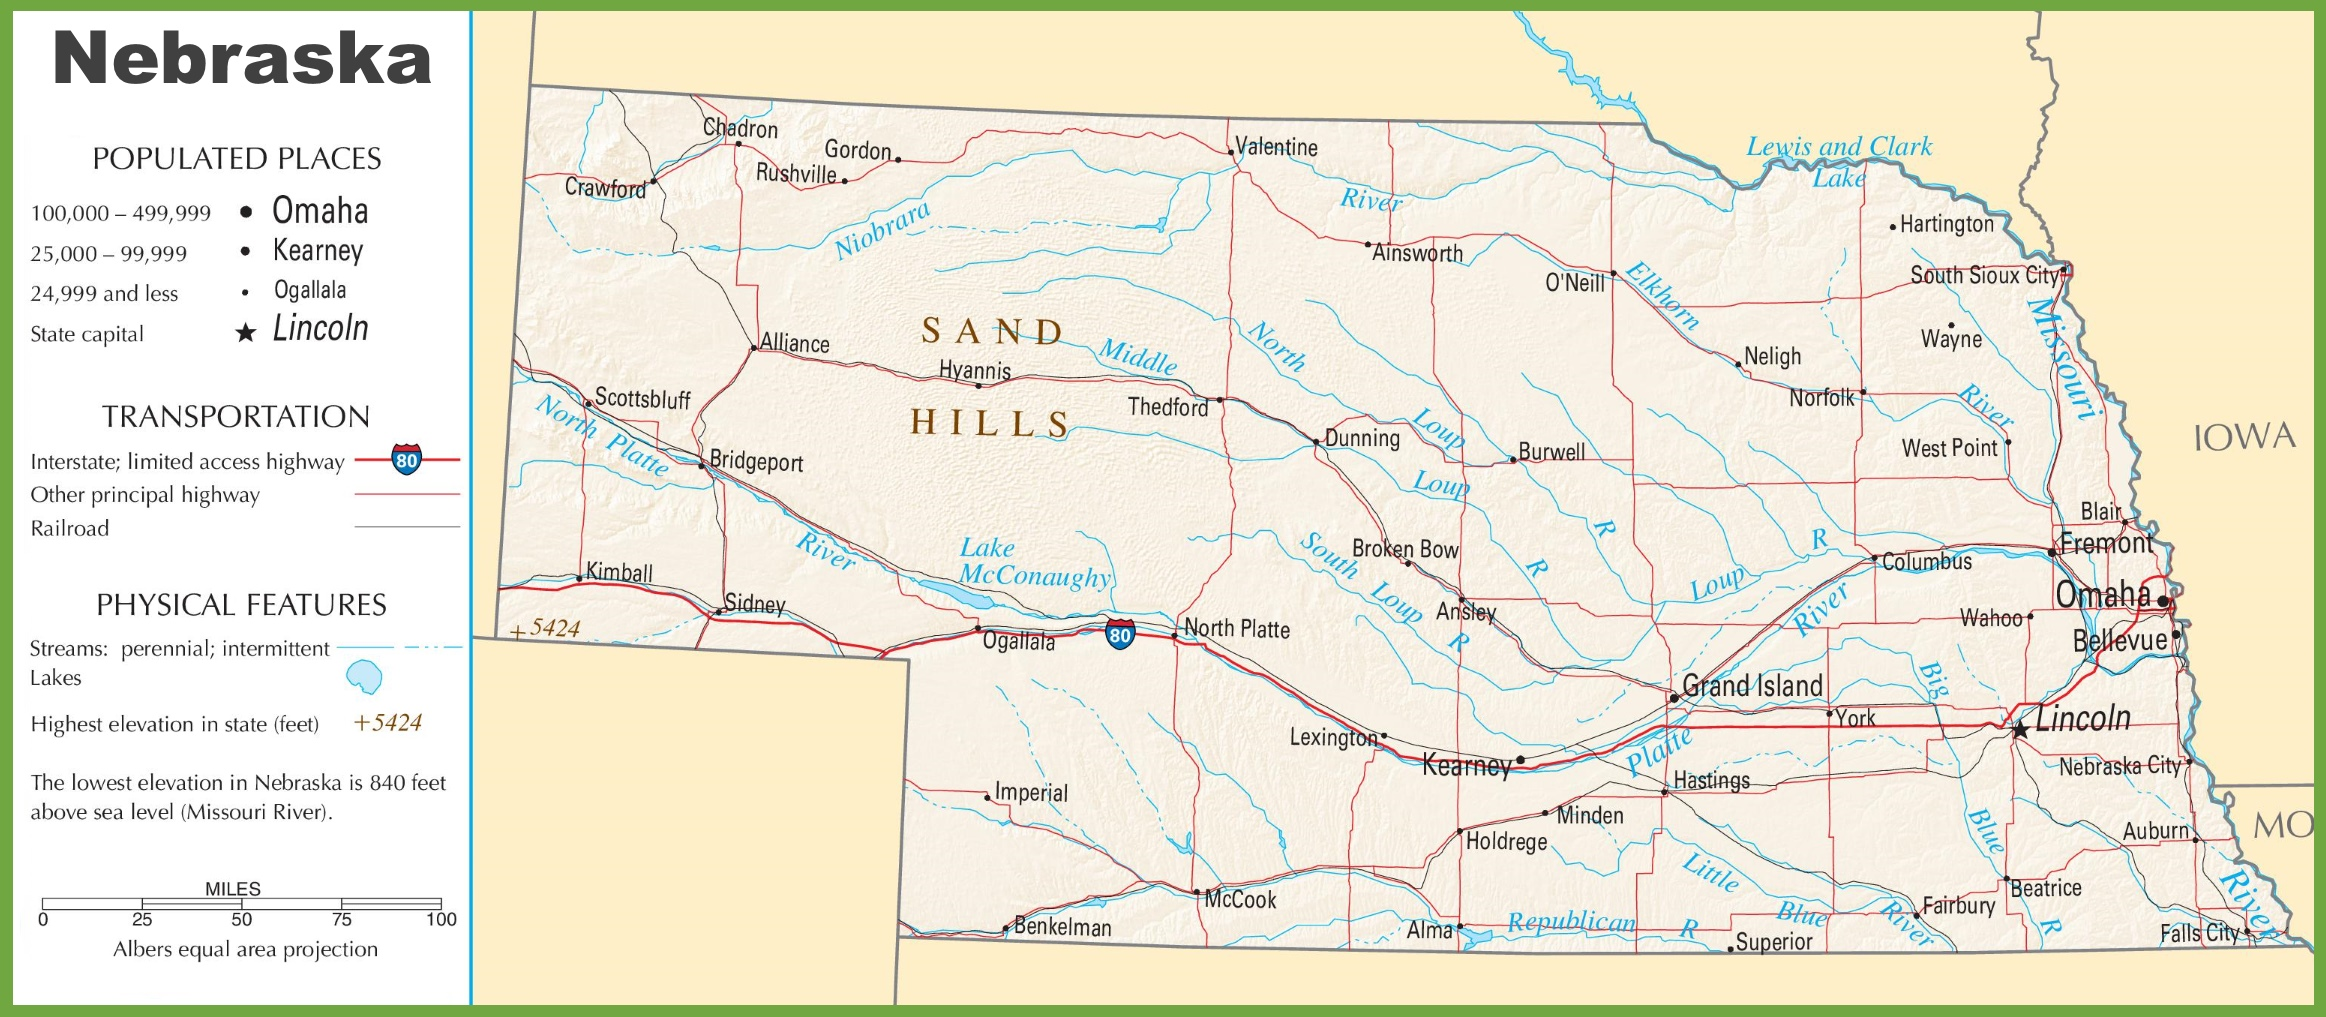 Nebraska Highway Map - Nebraska rivers map